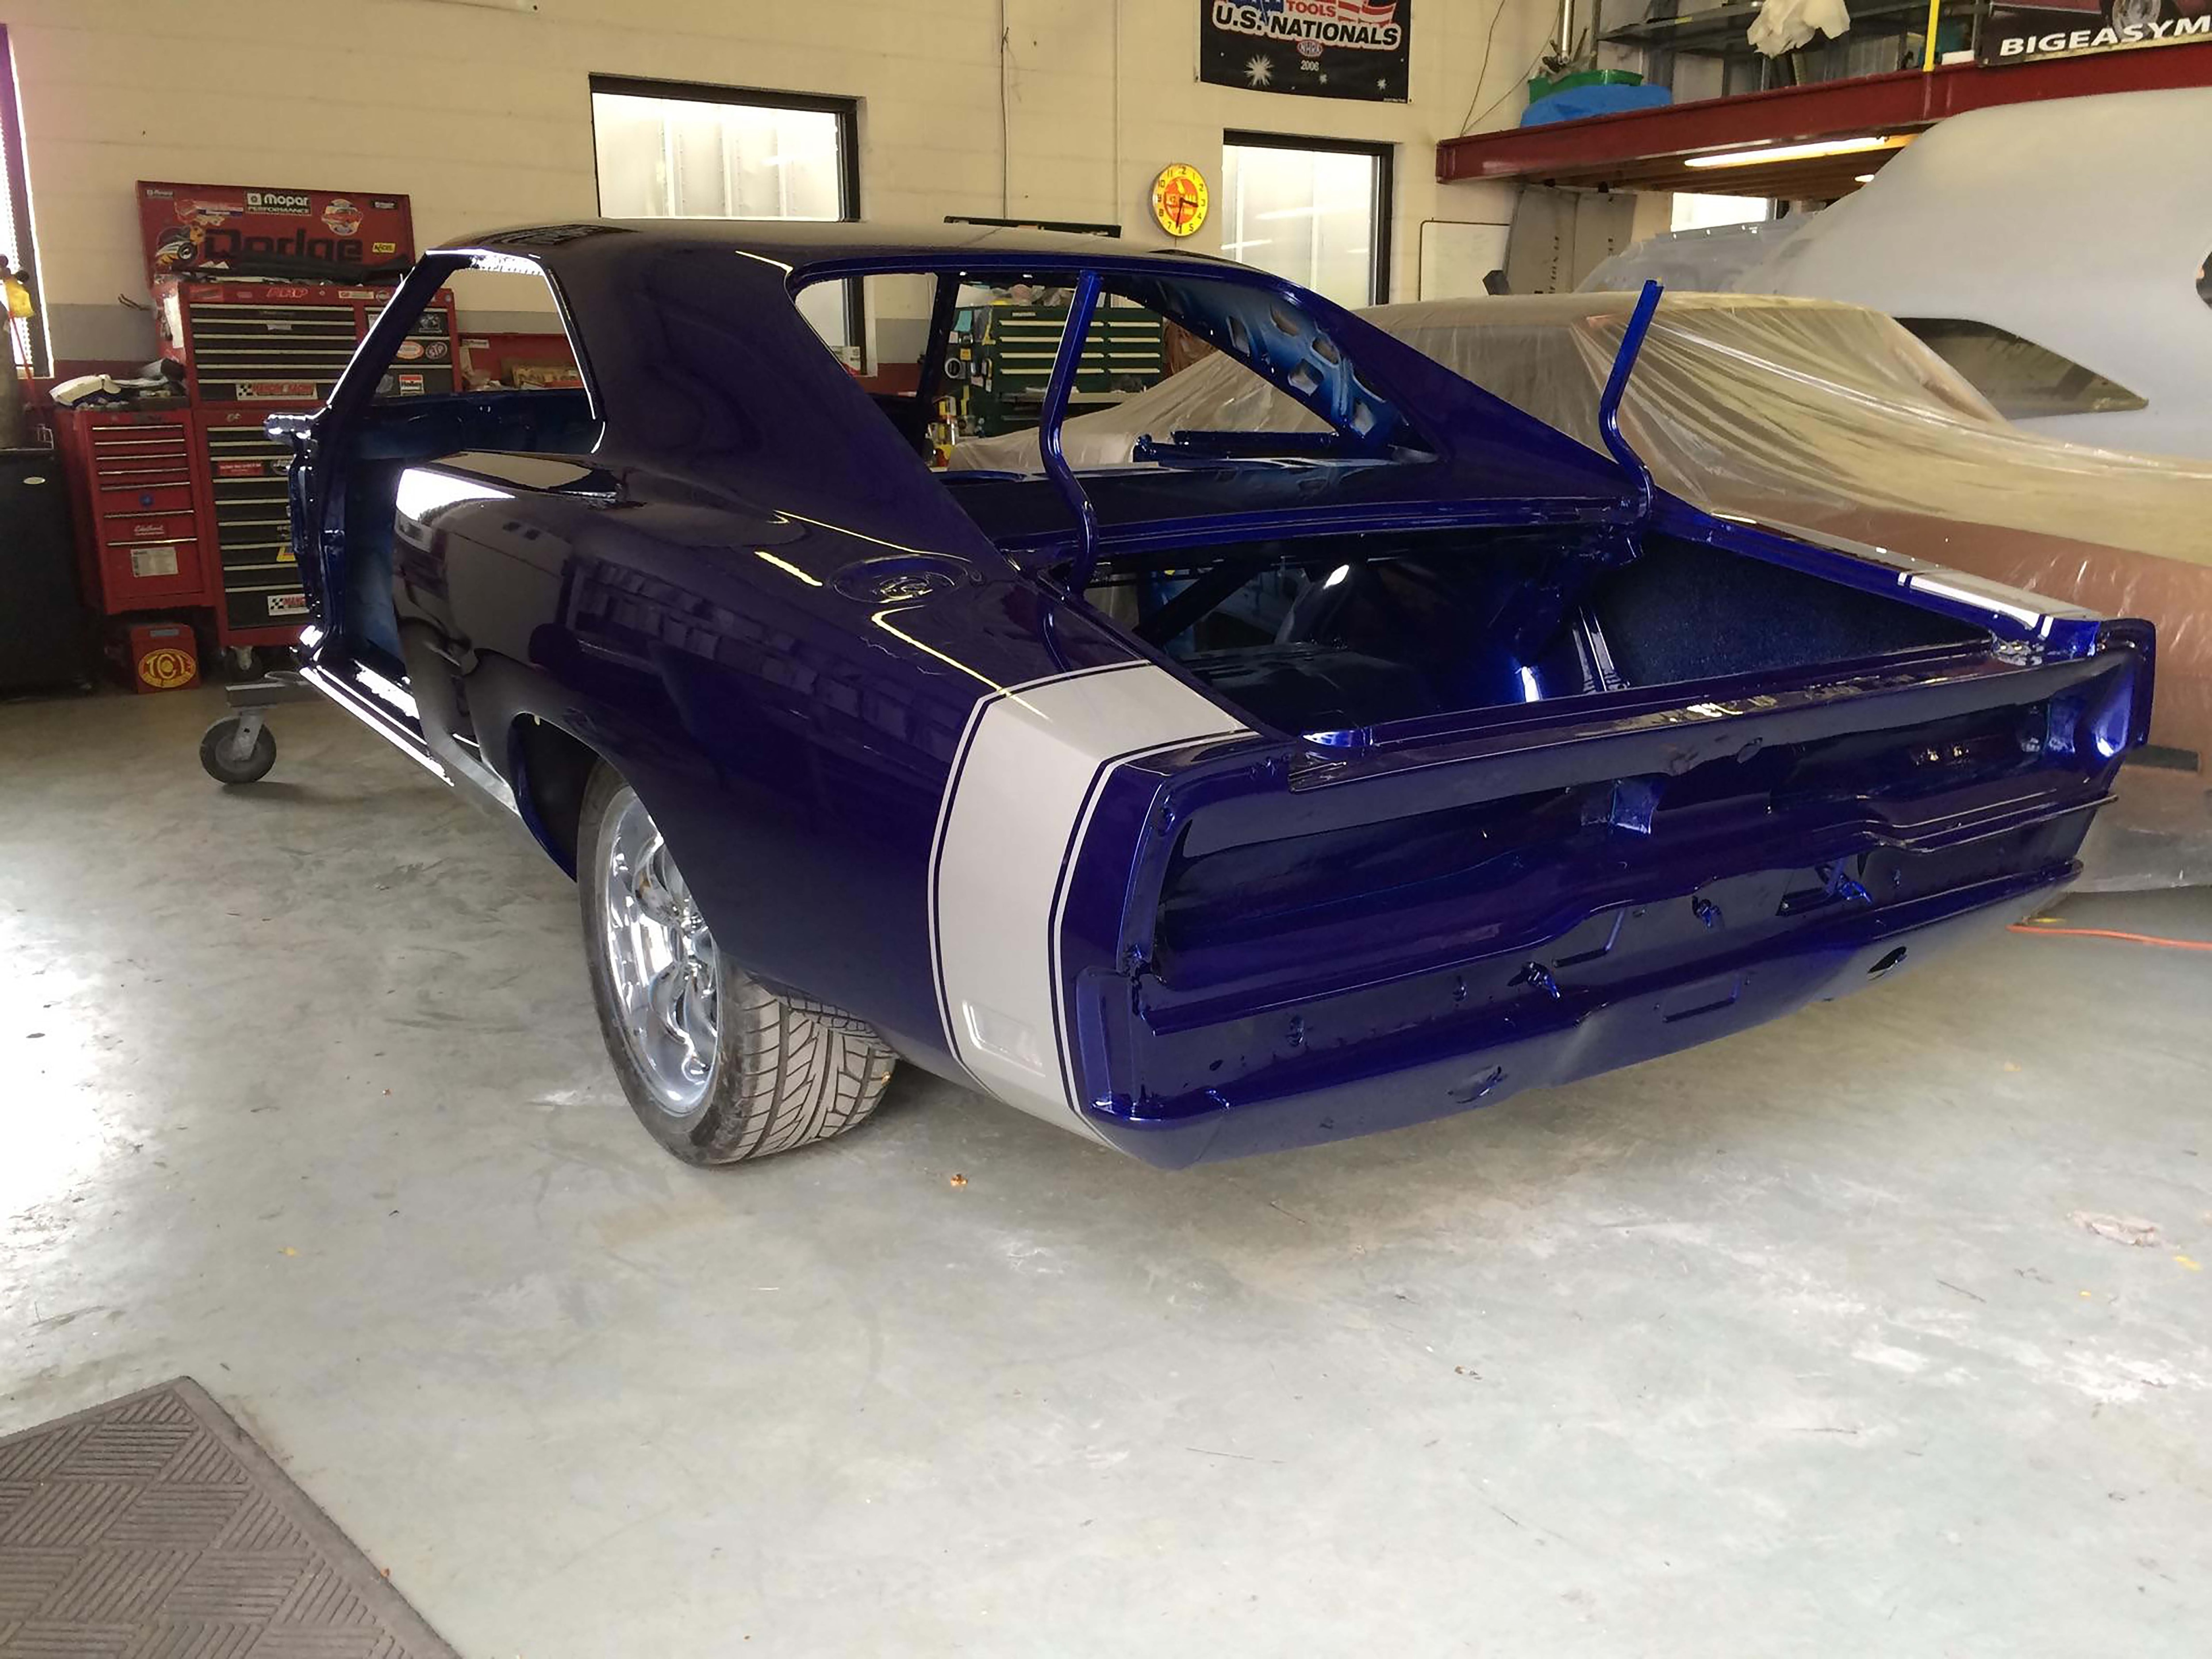 """Low and behold, when pushed back inside, the car changes to a purple color. Perhaps we should call it """"Purpleberry?"""""""